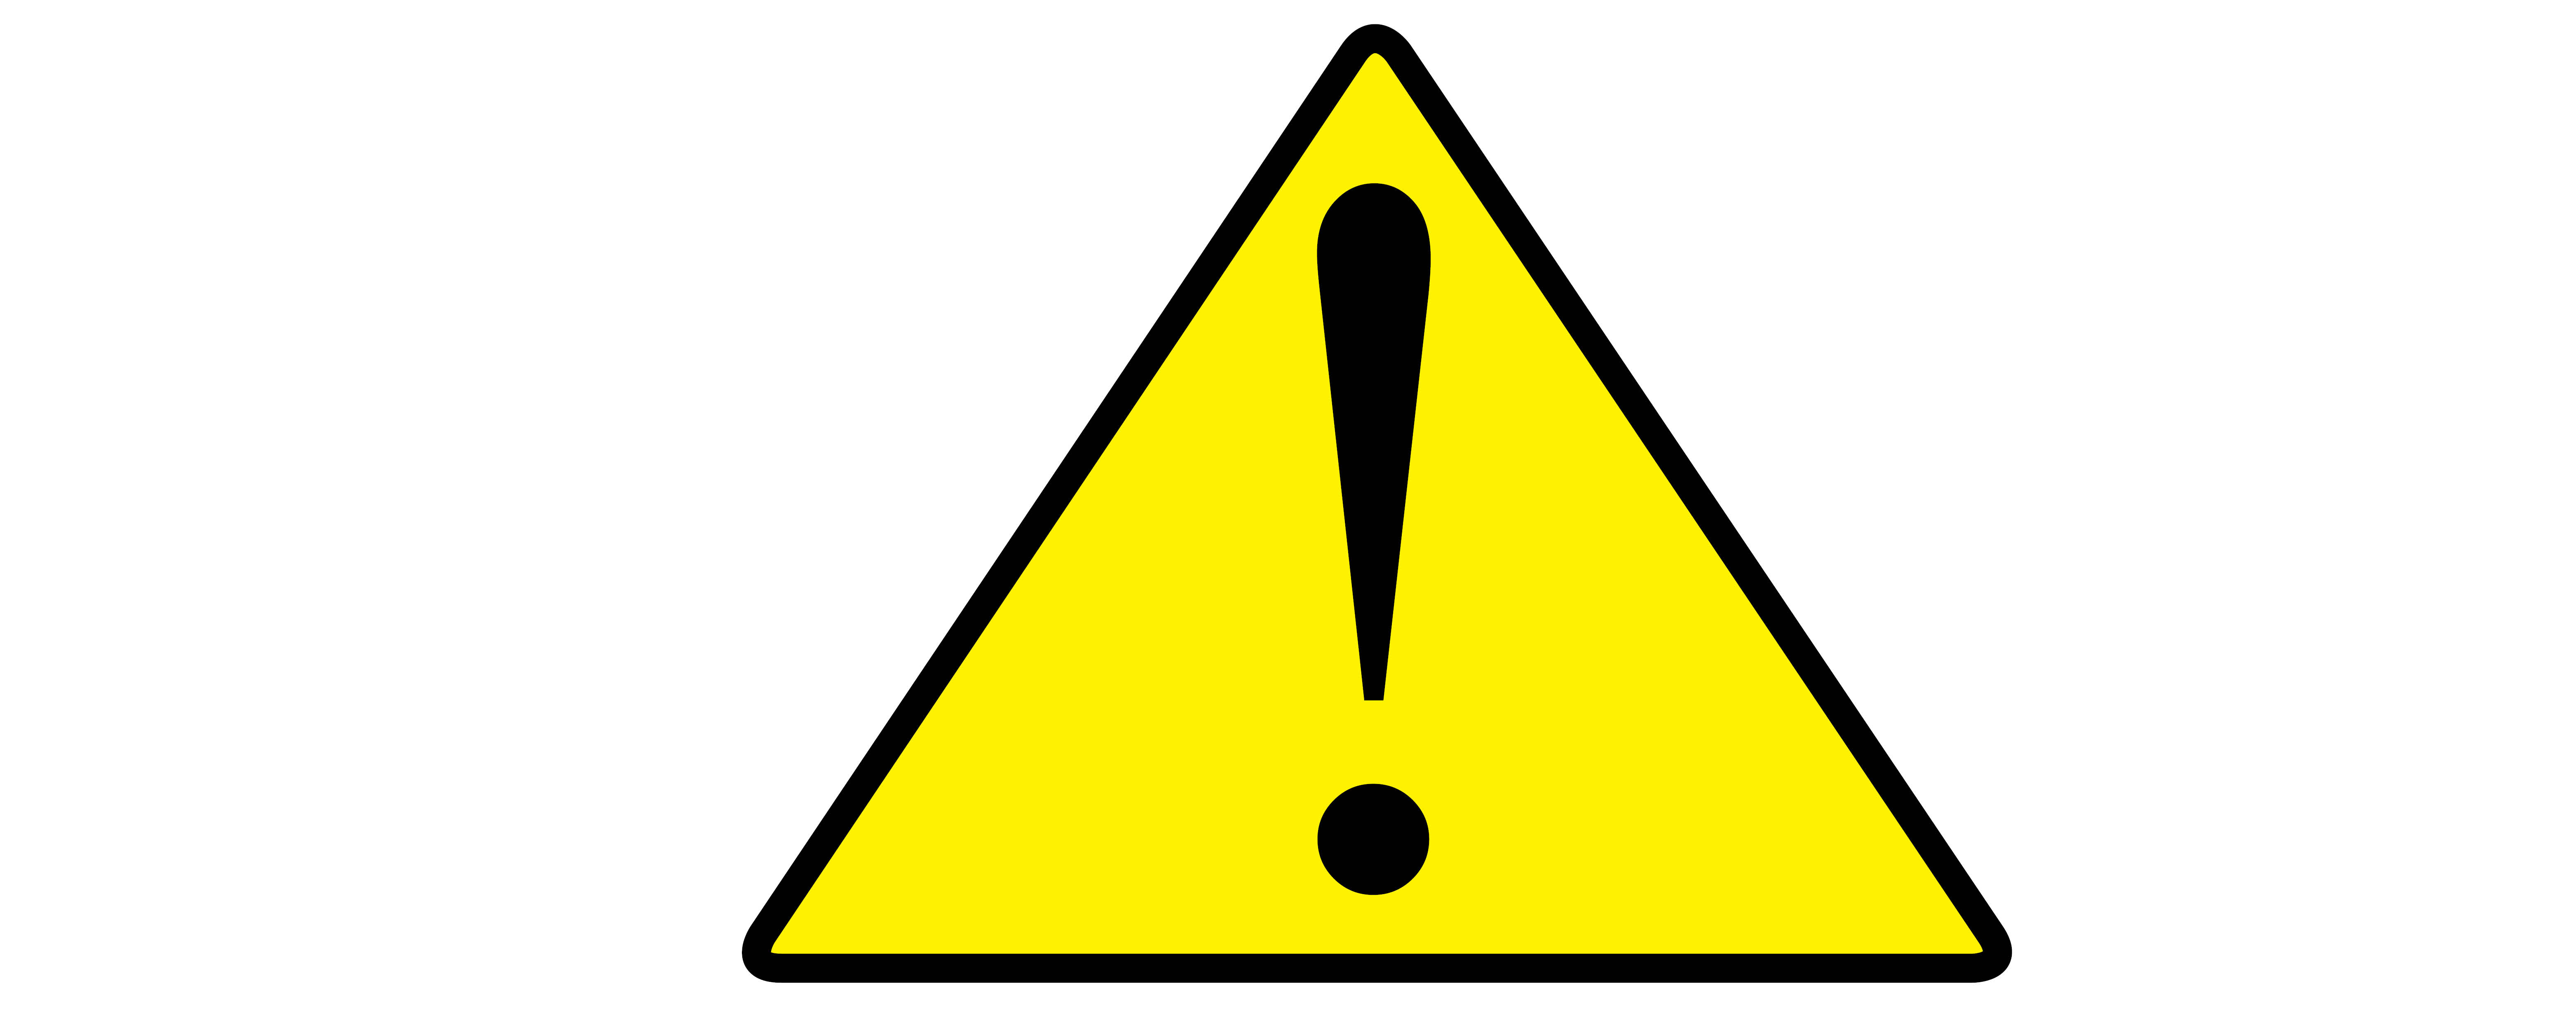 Yellow Triangle Outlined In Black With A Black Exclamation Point In The Middle